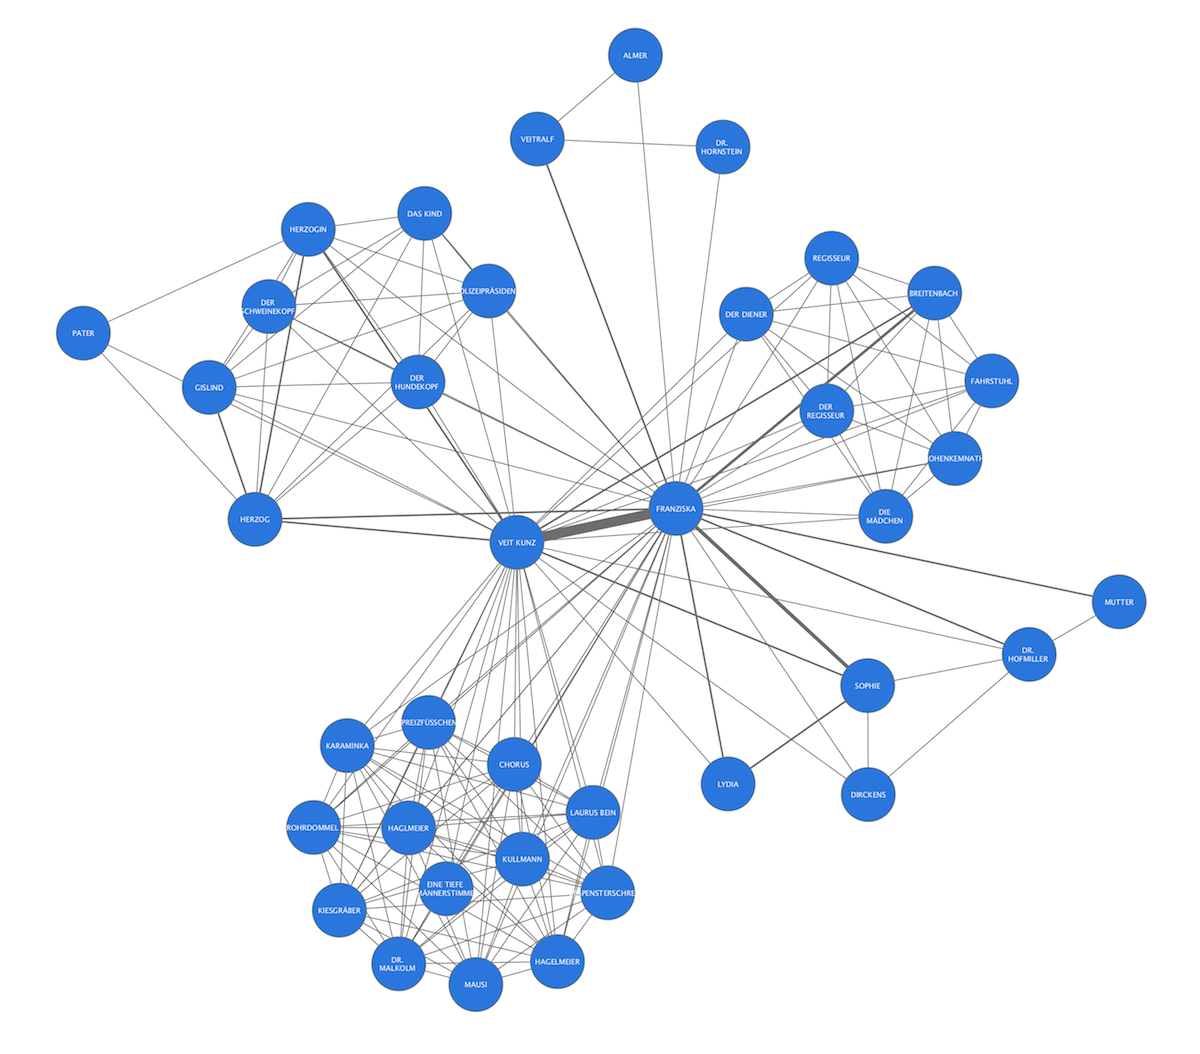 Network graph for Wedekind's